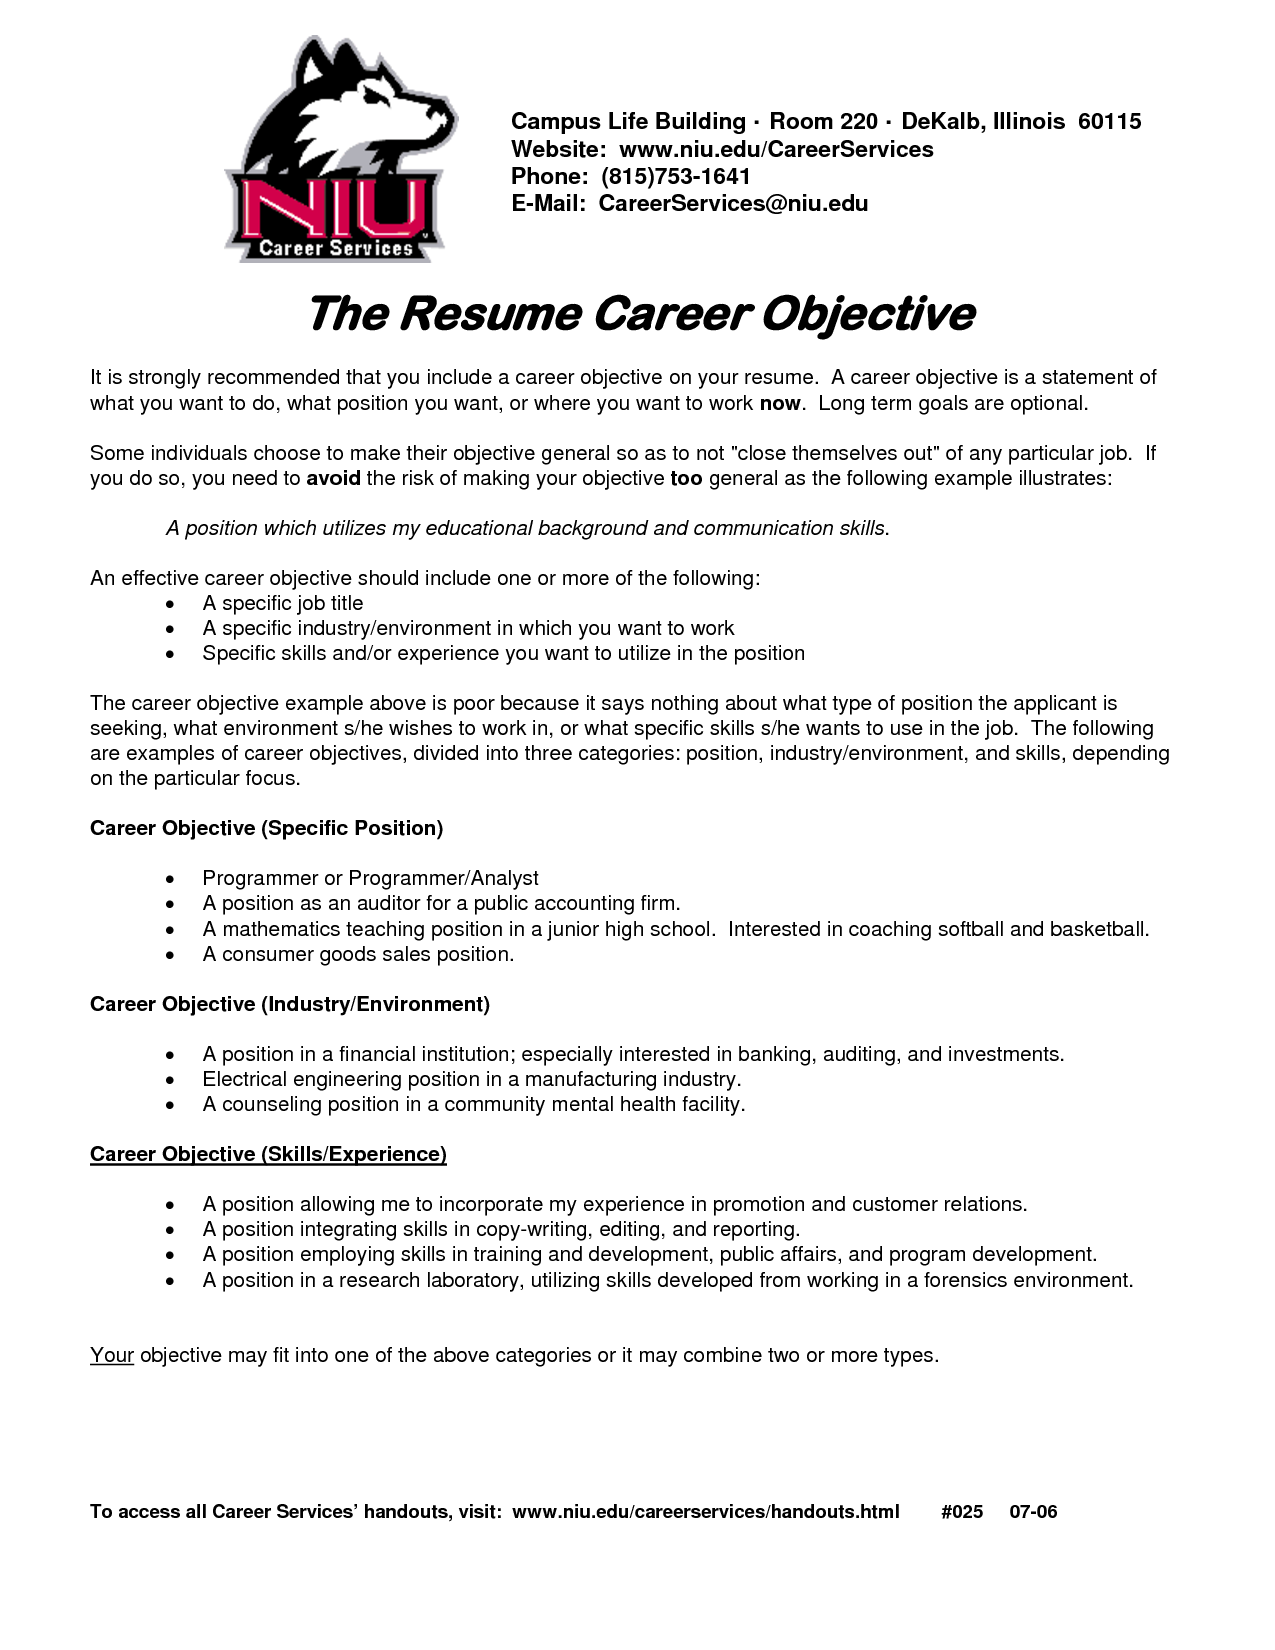 Customer Service Resume Objective Examples Https Google Search Qobjective Resume Resume